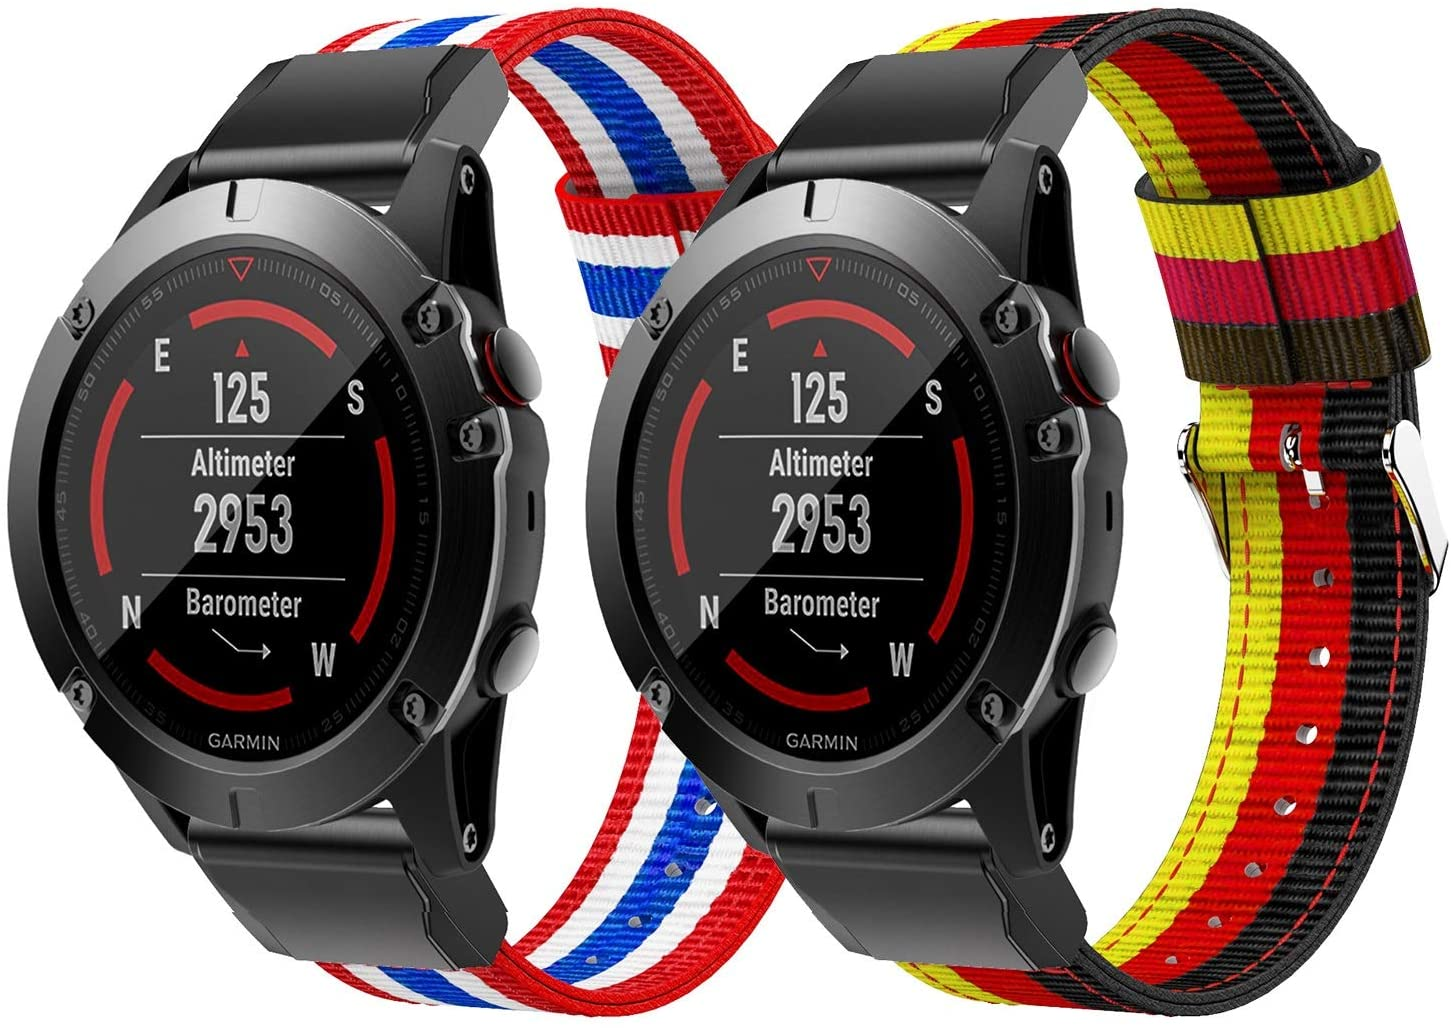 Junboer Compatible with Fenix 5X Watch Band, 26mm Premium Nylon Replacement Strap Wristband for Fenix 5X Plus/Fenix 6X/Fenix 6X Pro/Fenix 3/Fenix 3 HR/Descent MK1/D2 Delta PX/D2 Charlie Smartwatches